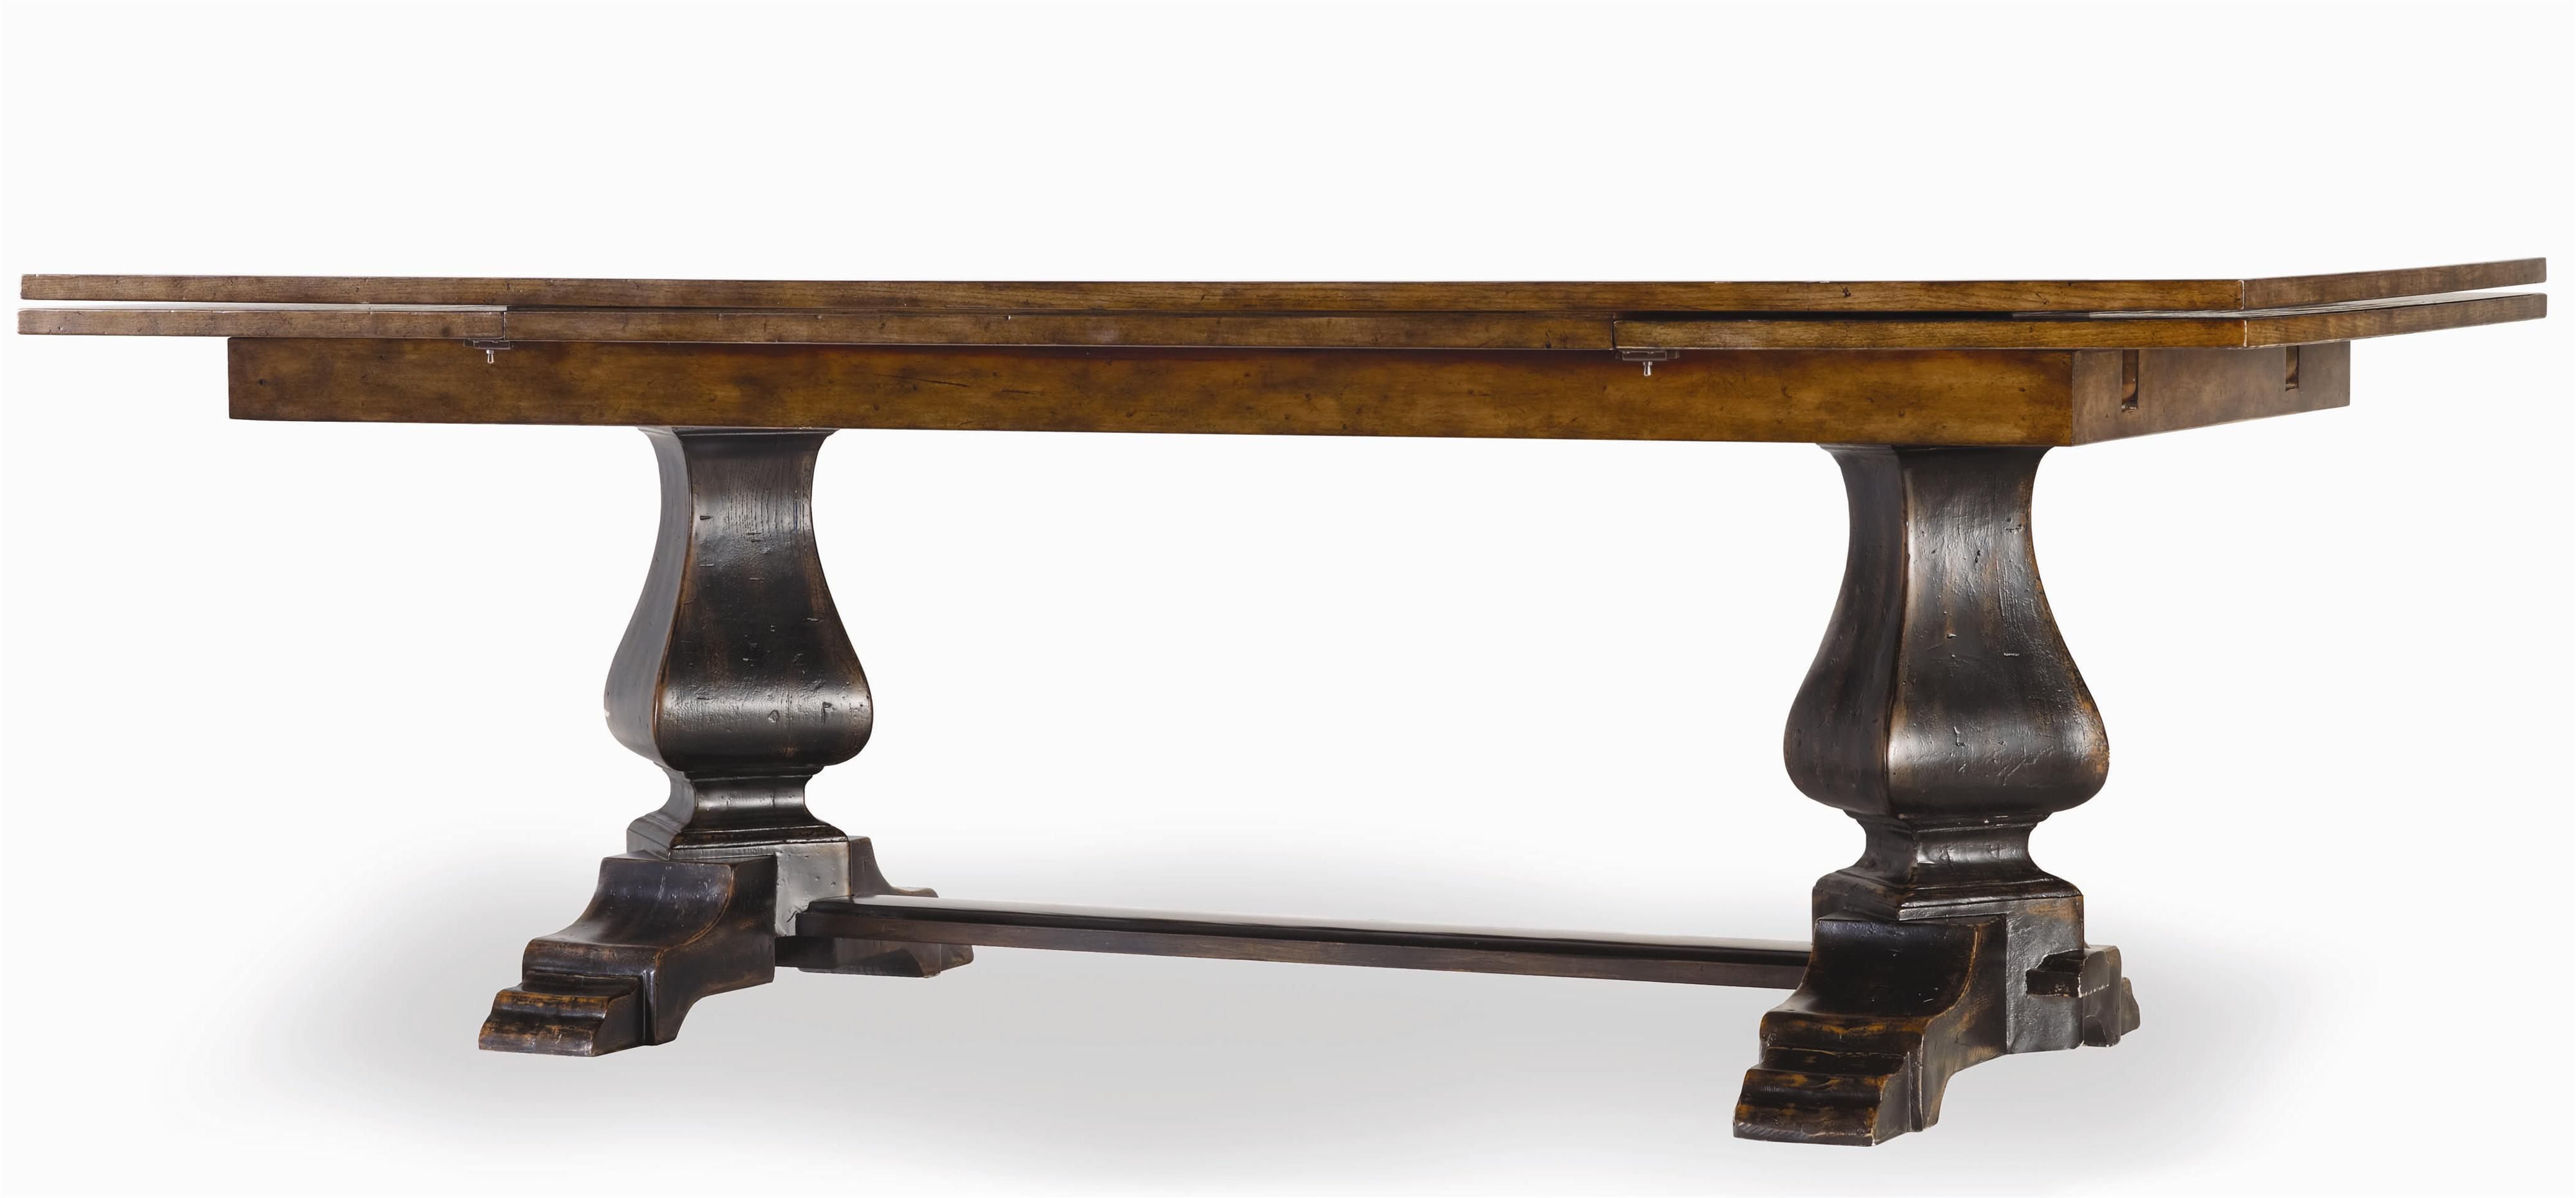 Sanctuary Refectory Table by Hooker Furniture at Baer's Furniture